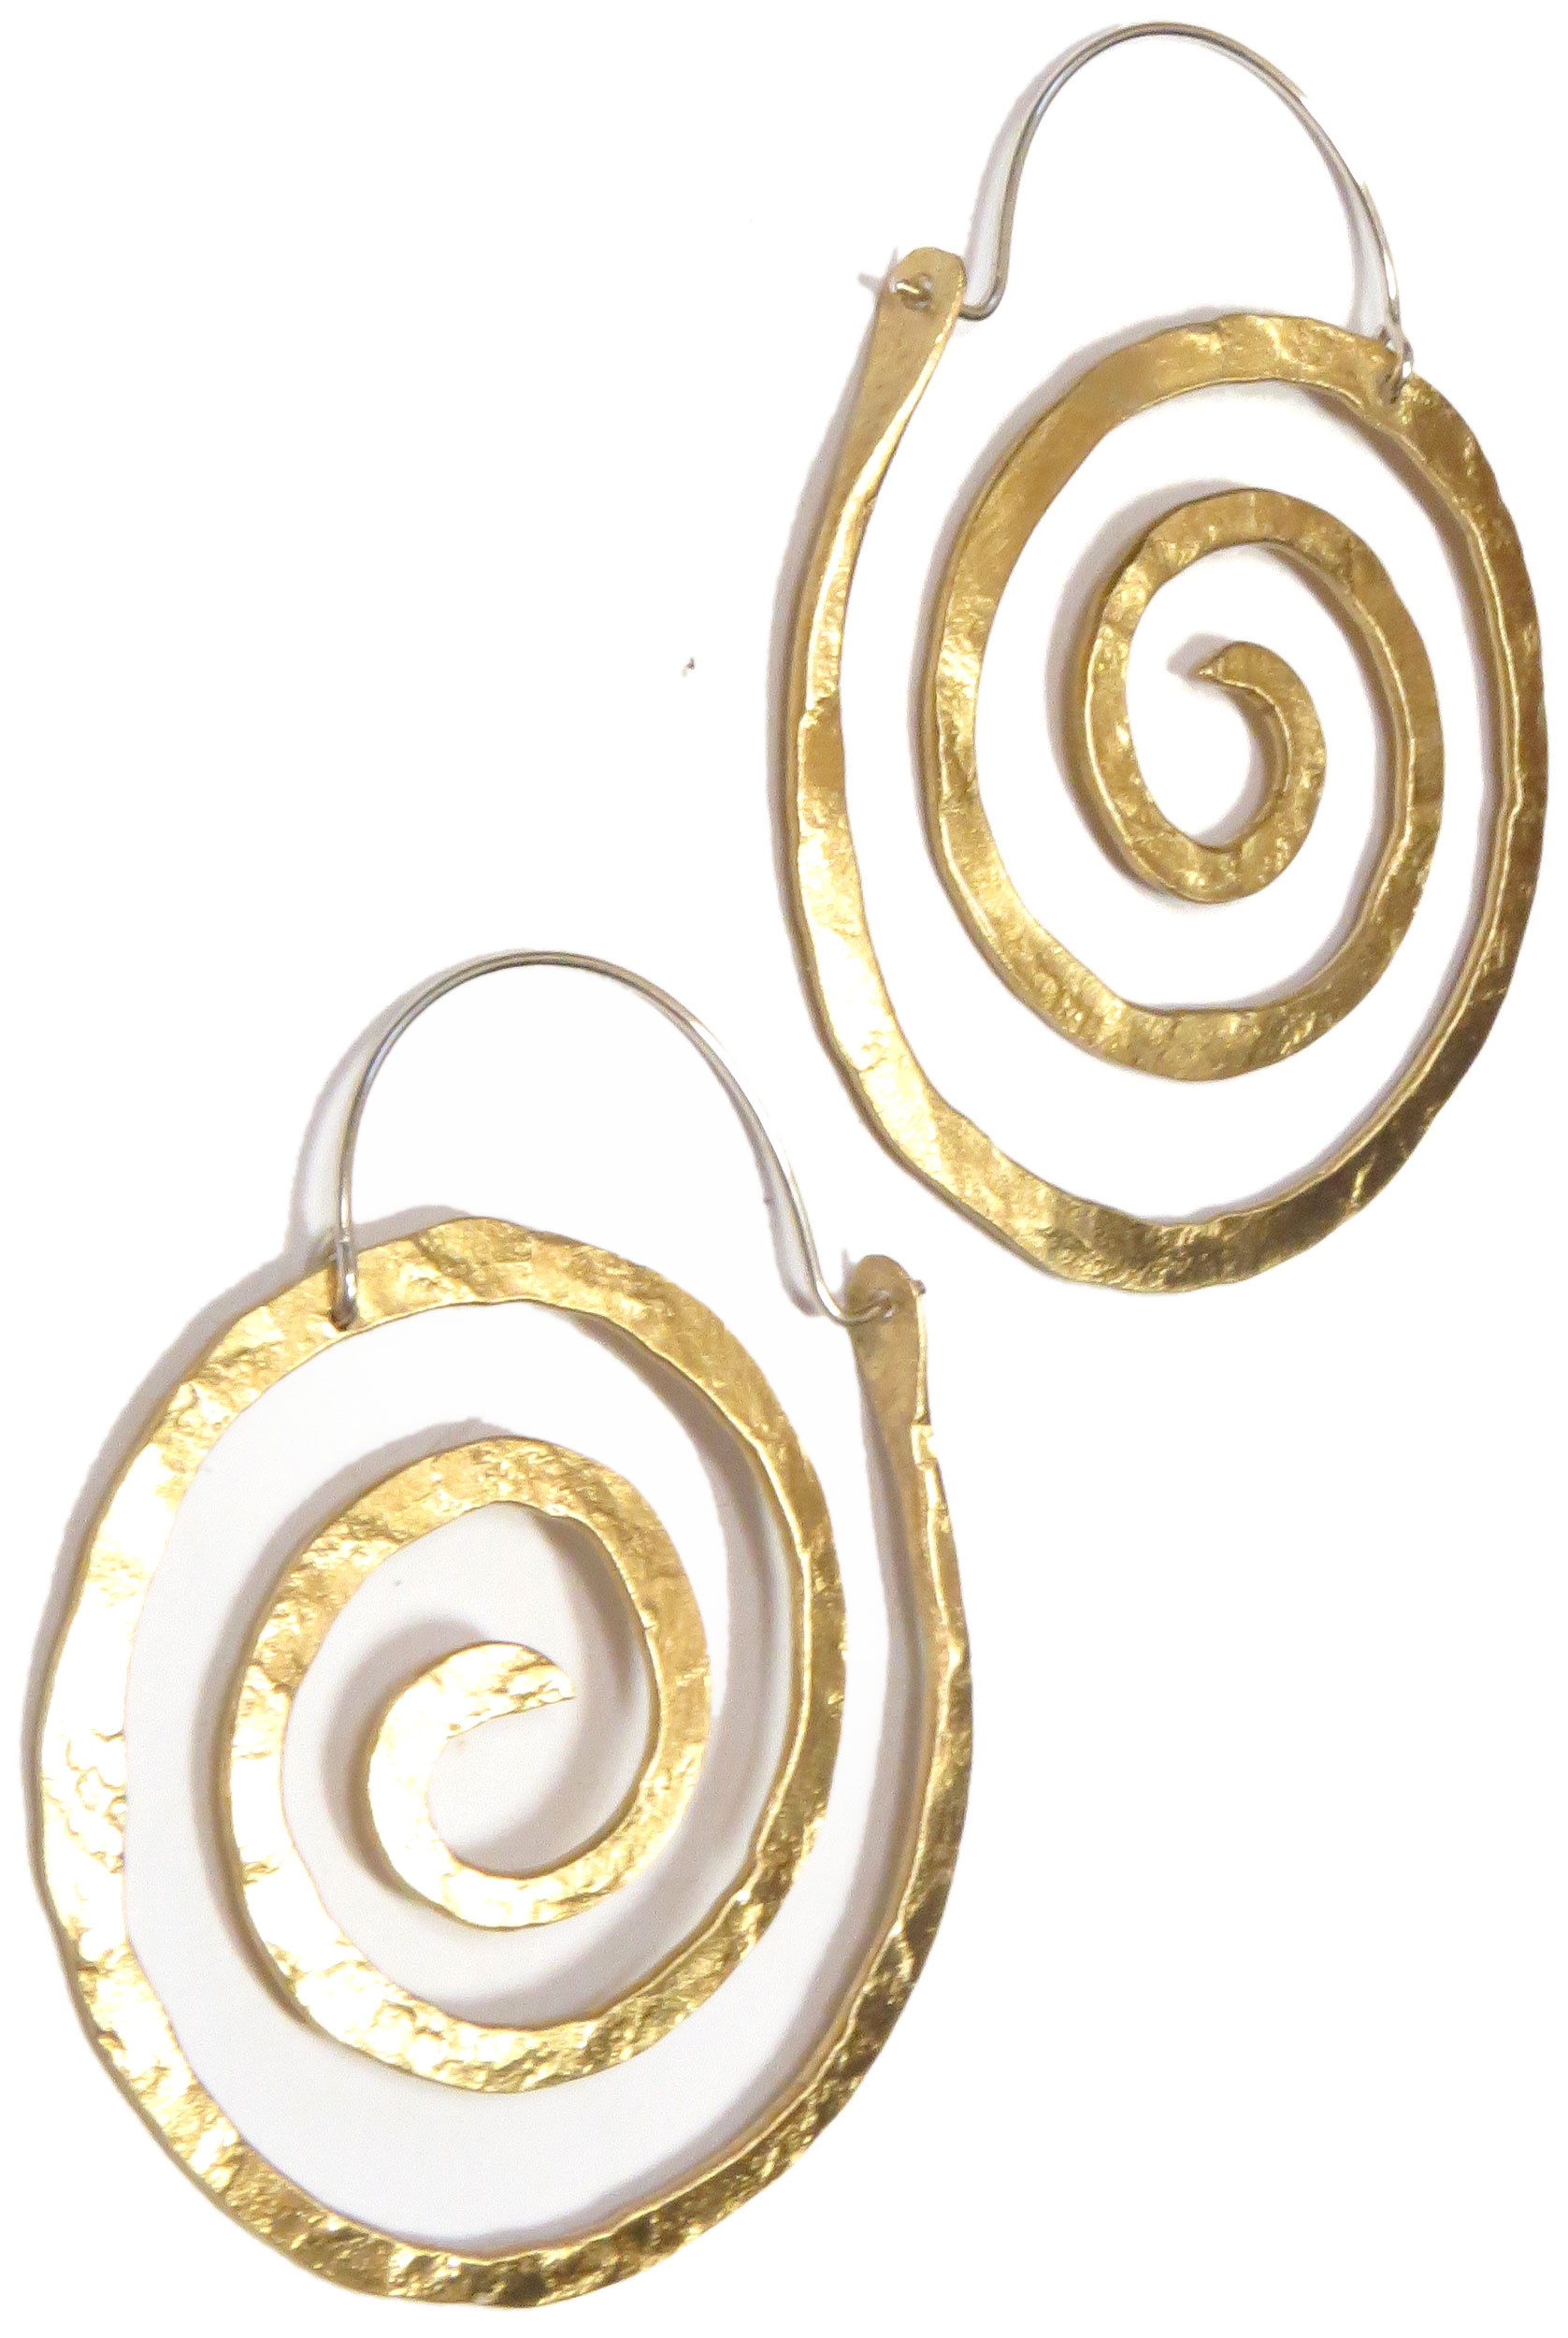 Brass Spirals